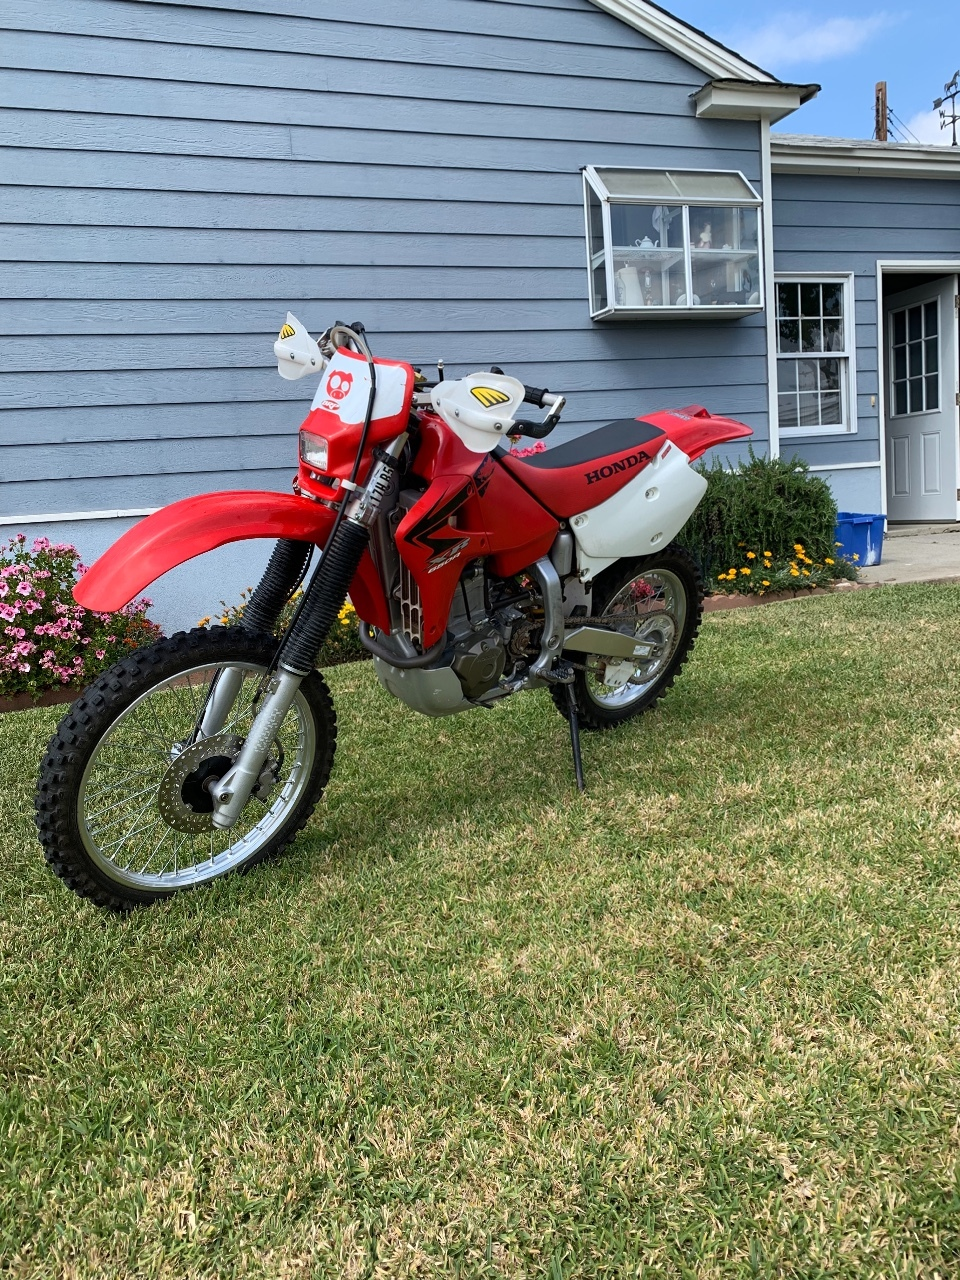 Xr200 for sale honda dirt bike motorcycles cycle trader